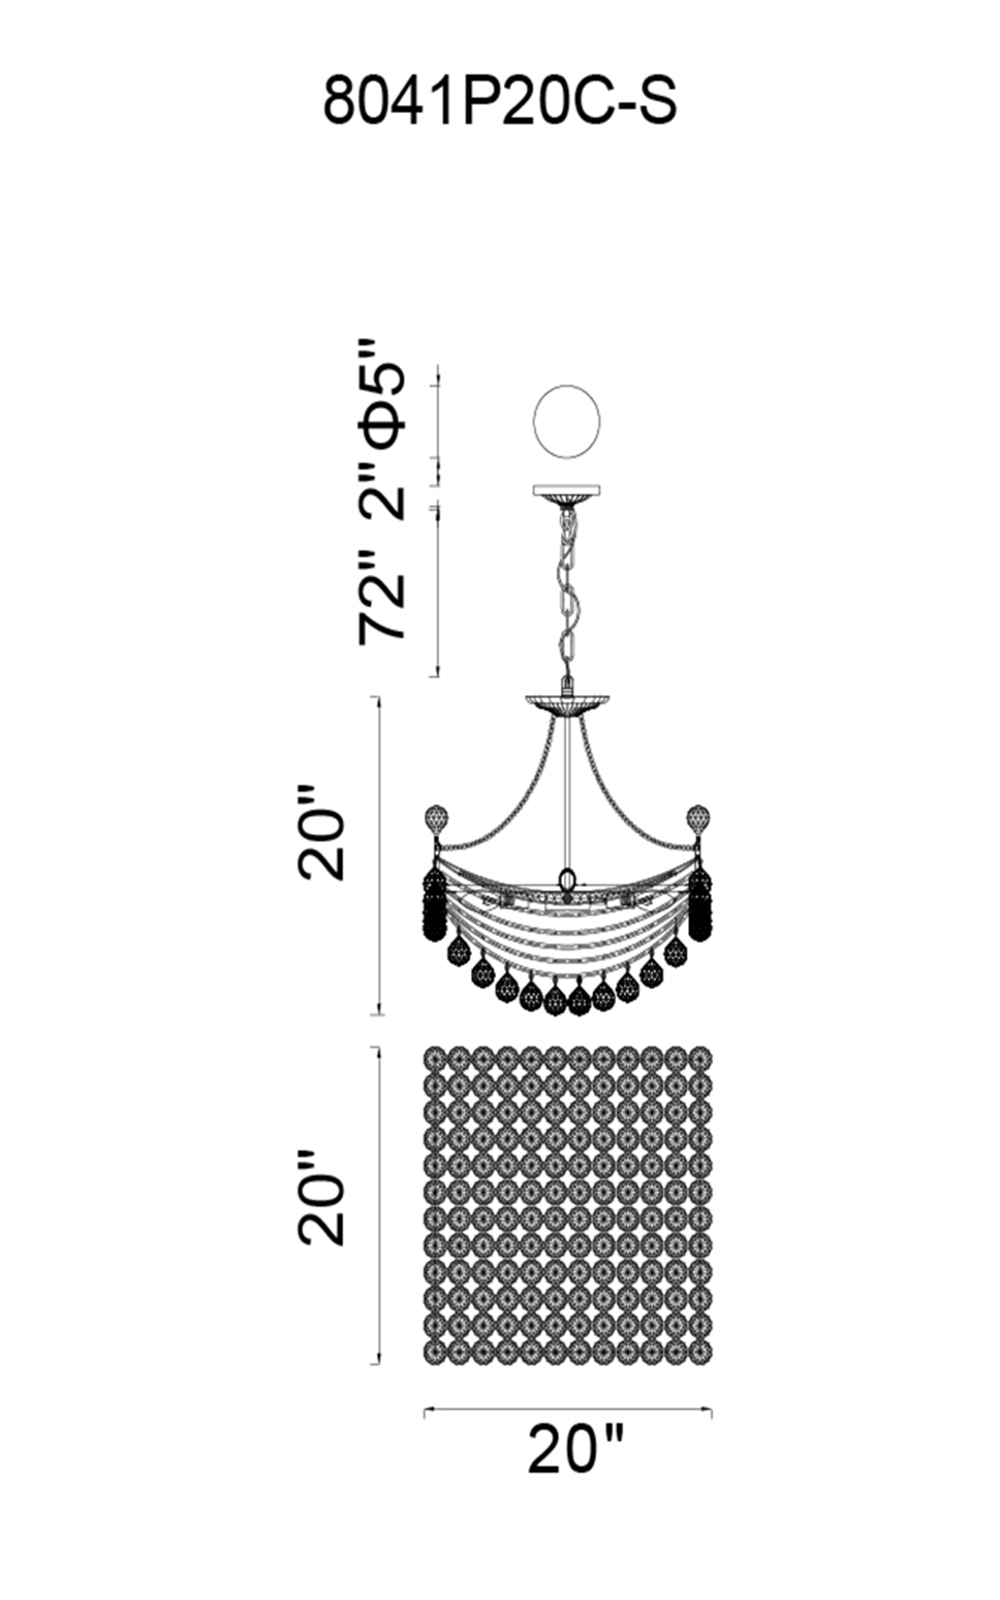 CWI Lighting Jasmine 8 Light Down Chandelier With Chrome Finish Model: 8041P20C-S Line Drawing